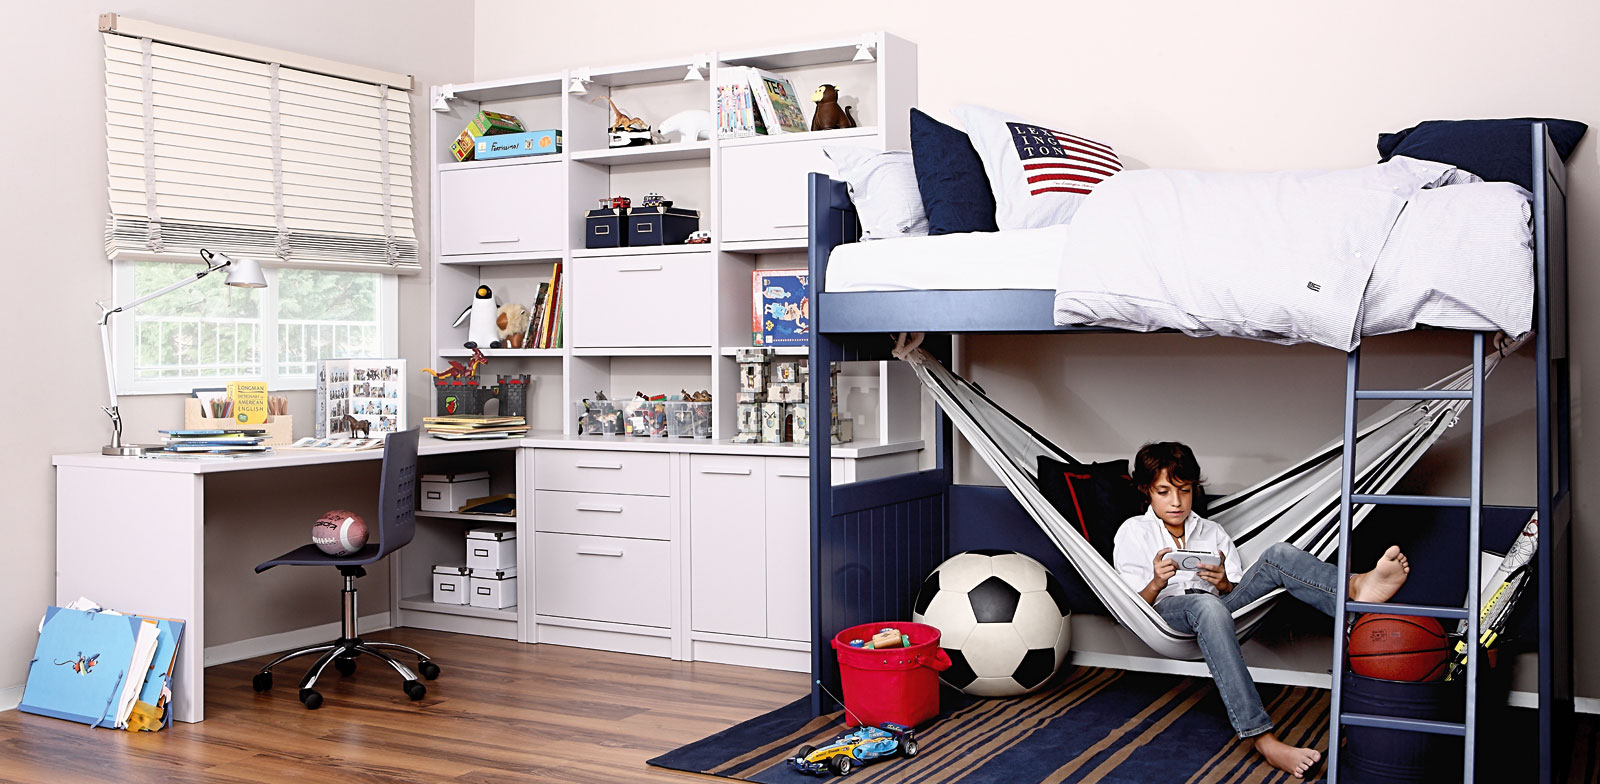 10 dormitorios juveniles modernos ideas para decorar for Habitaciones de estudiantes decoracion